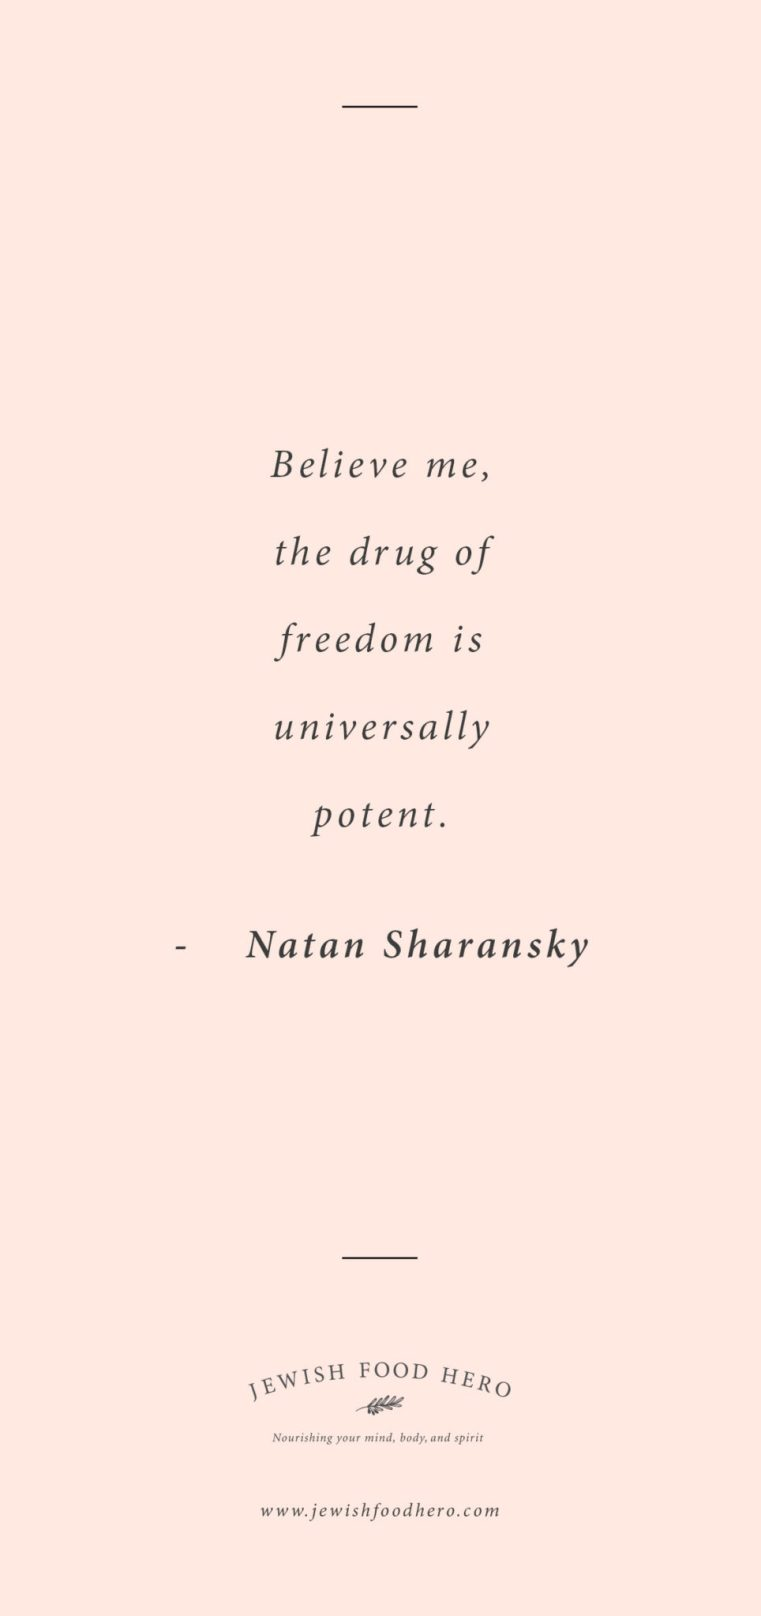 Natan Sharansky quotes, quotes on freedom, Jewish quotes on freedom